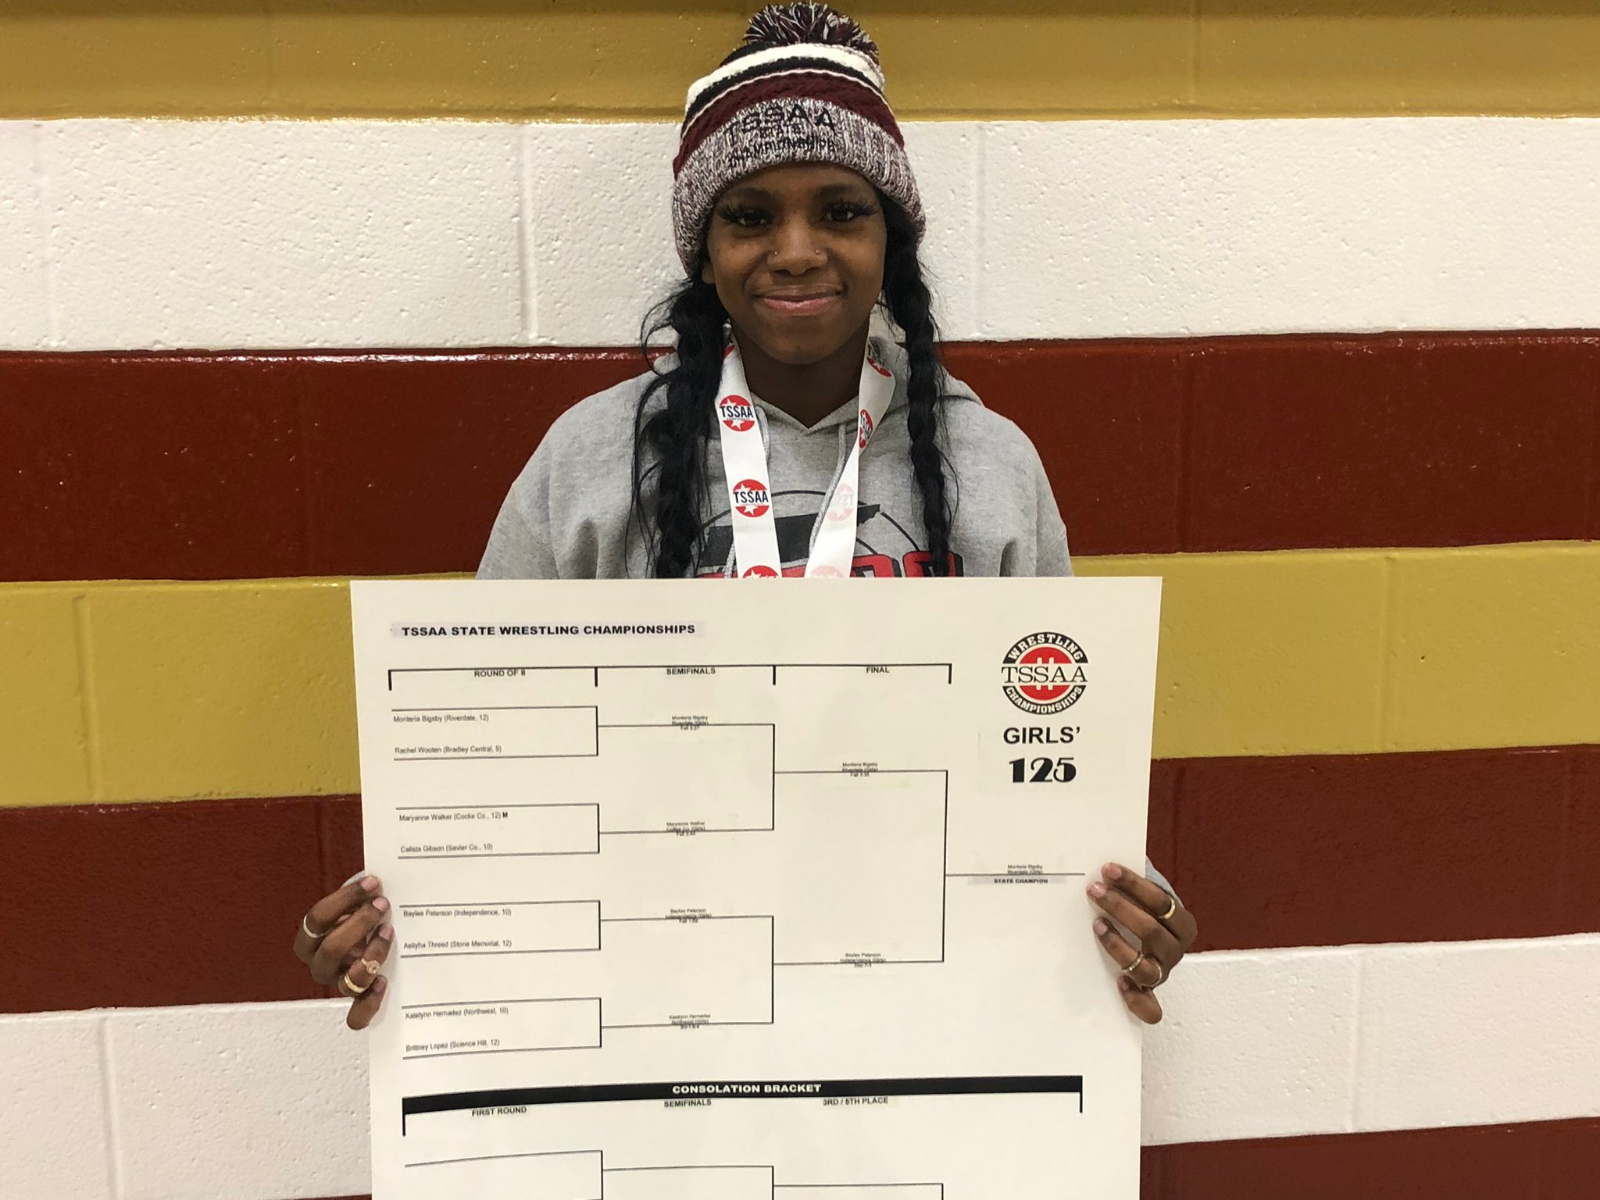 Riverdale girls wrestler started her career this season. She finished with a state title.